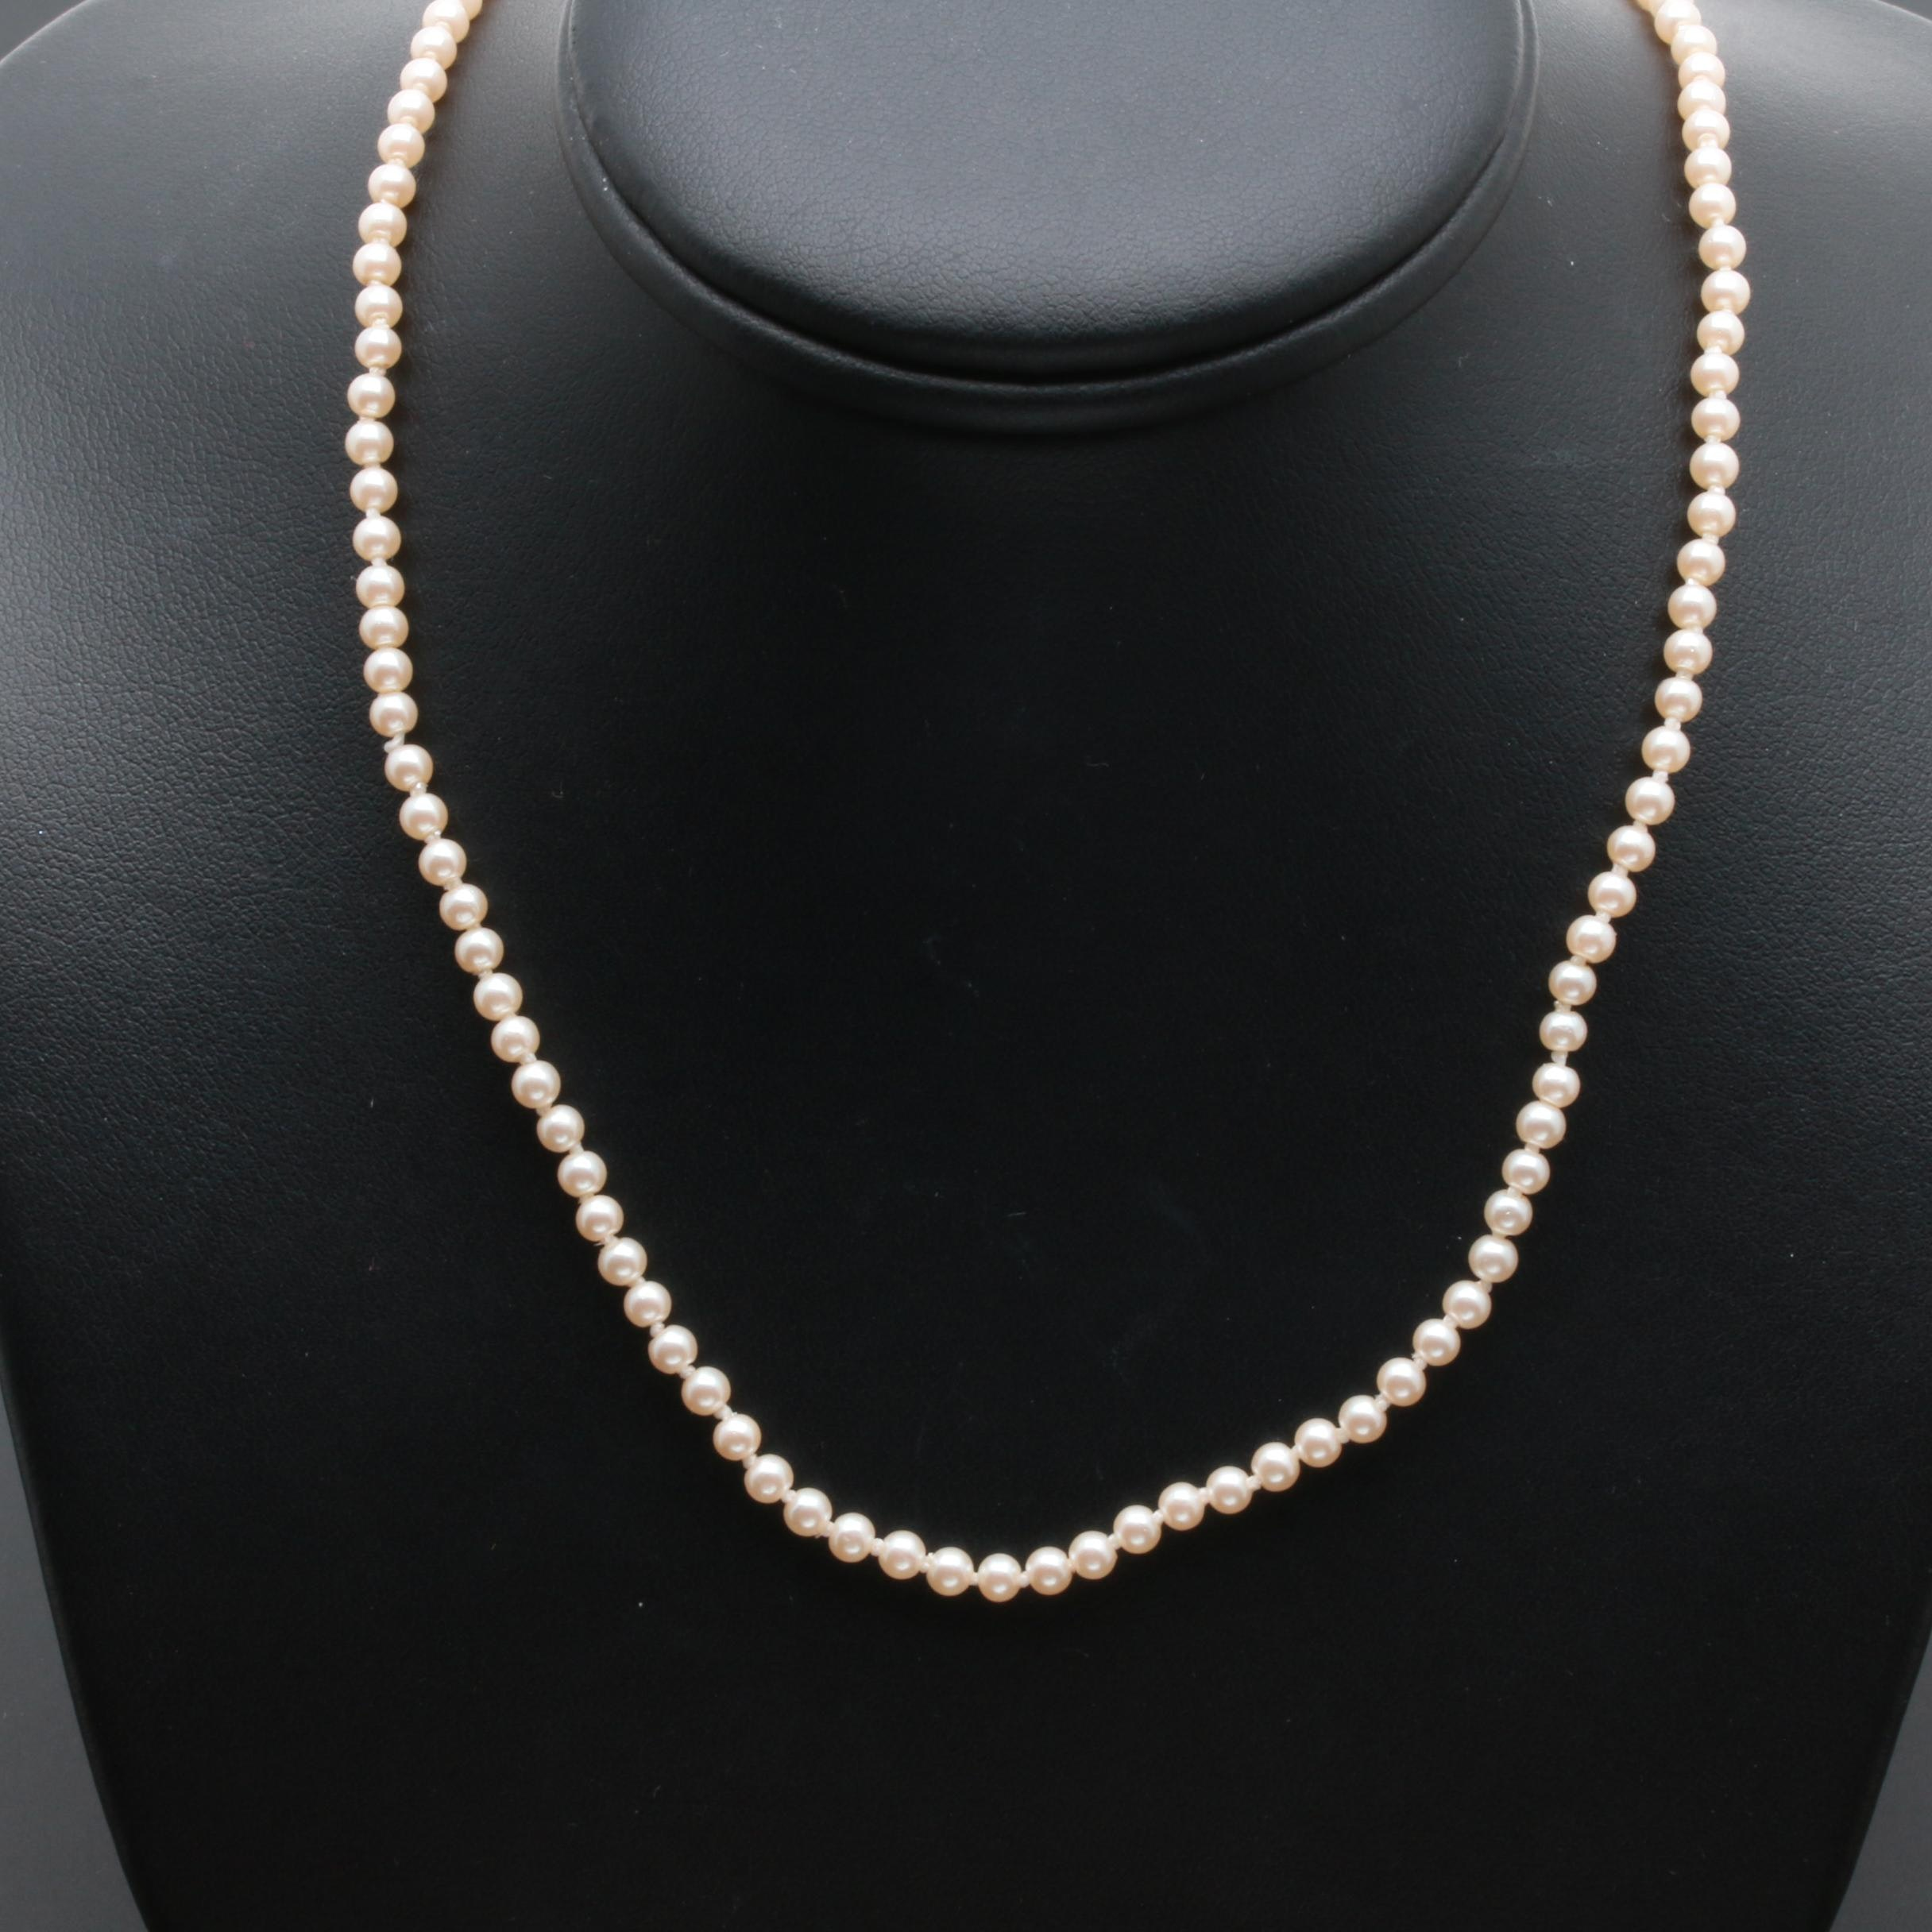 14K and 18K Yellow Gold Cultured Pearl Necklace